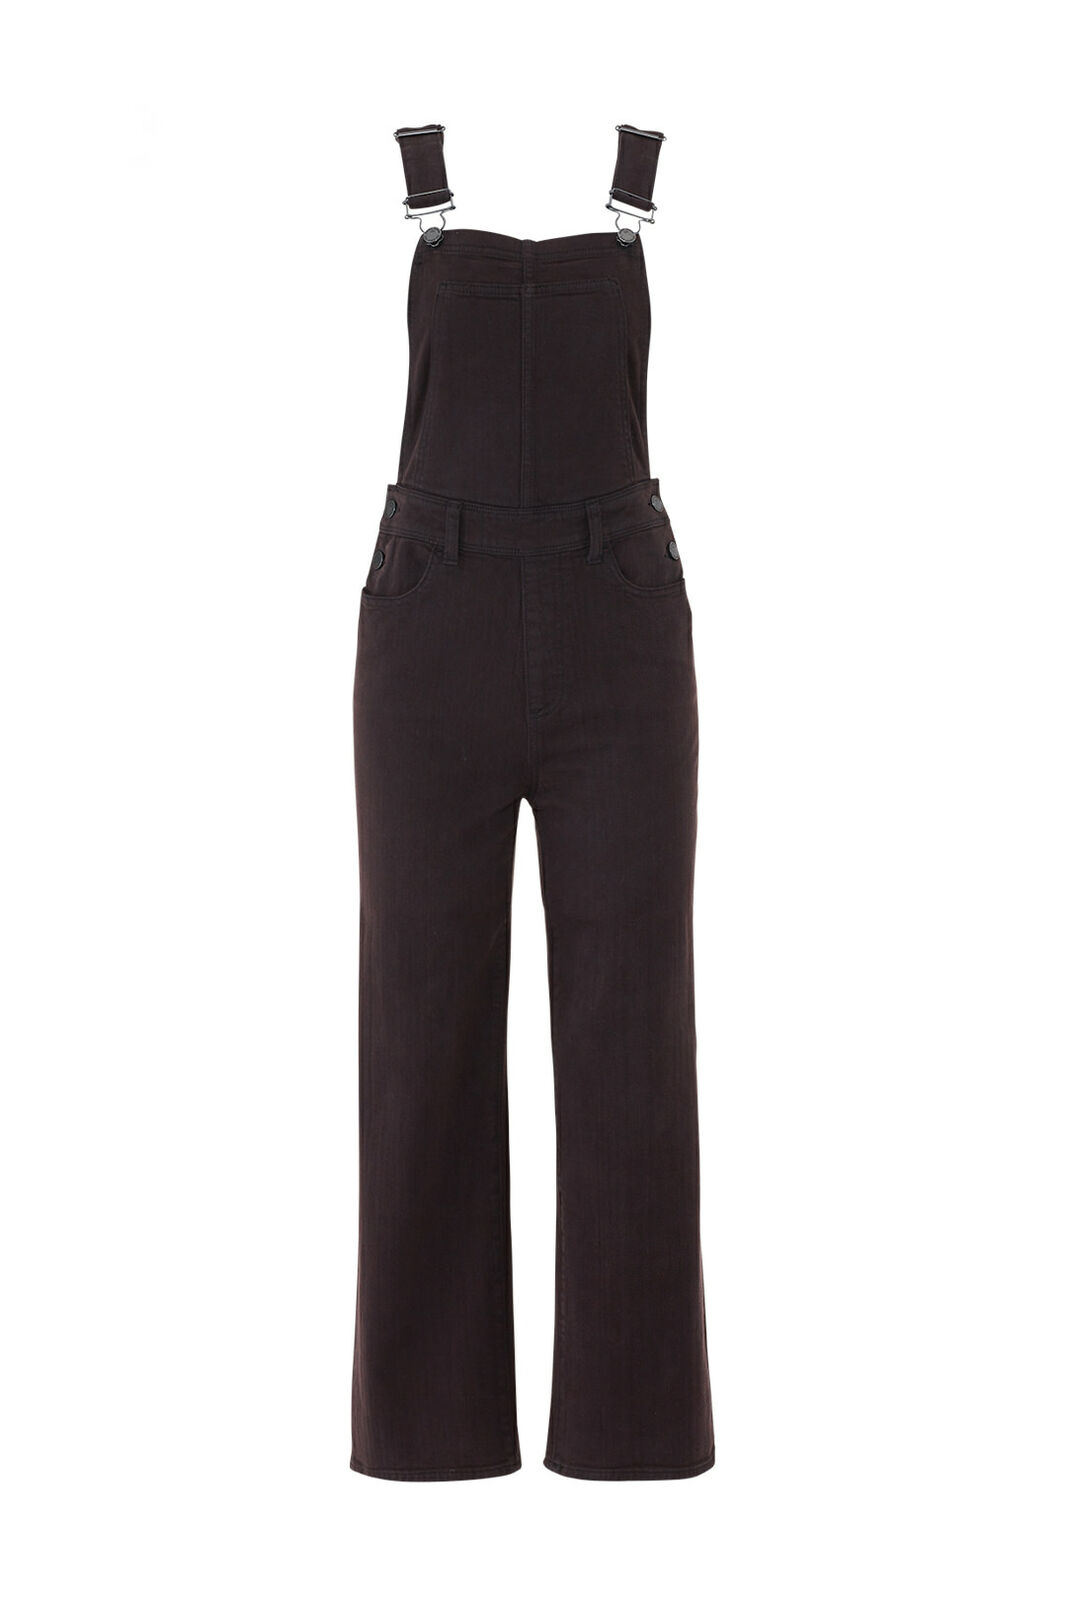 fair price pretty cheap top brands Details about PAIGE Women's Overalls Black US Size 29 Straight Leg Denim  5-Pocket $279- #757